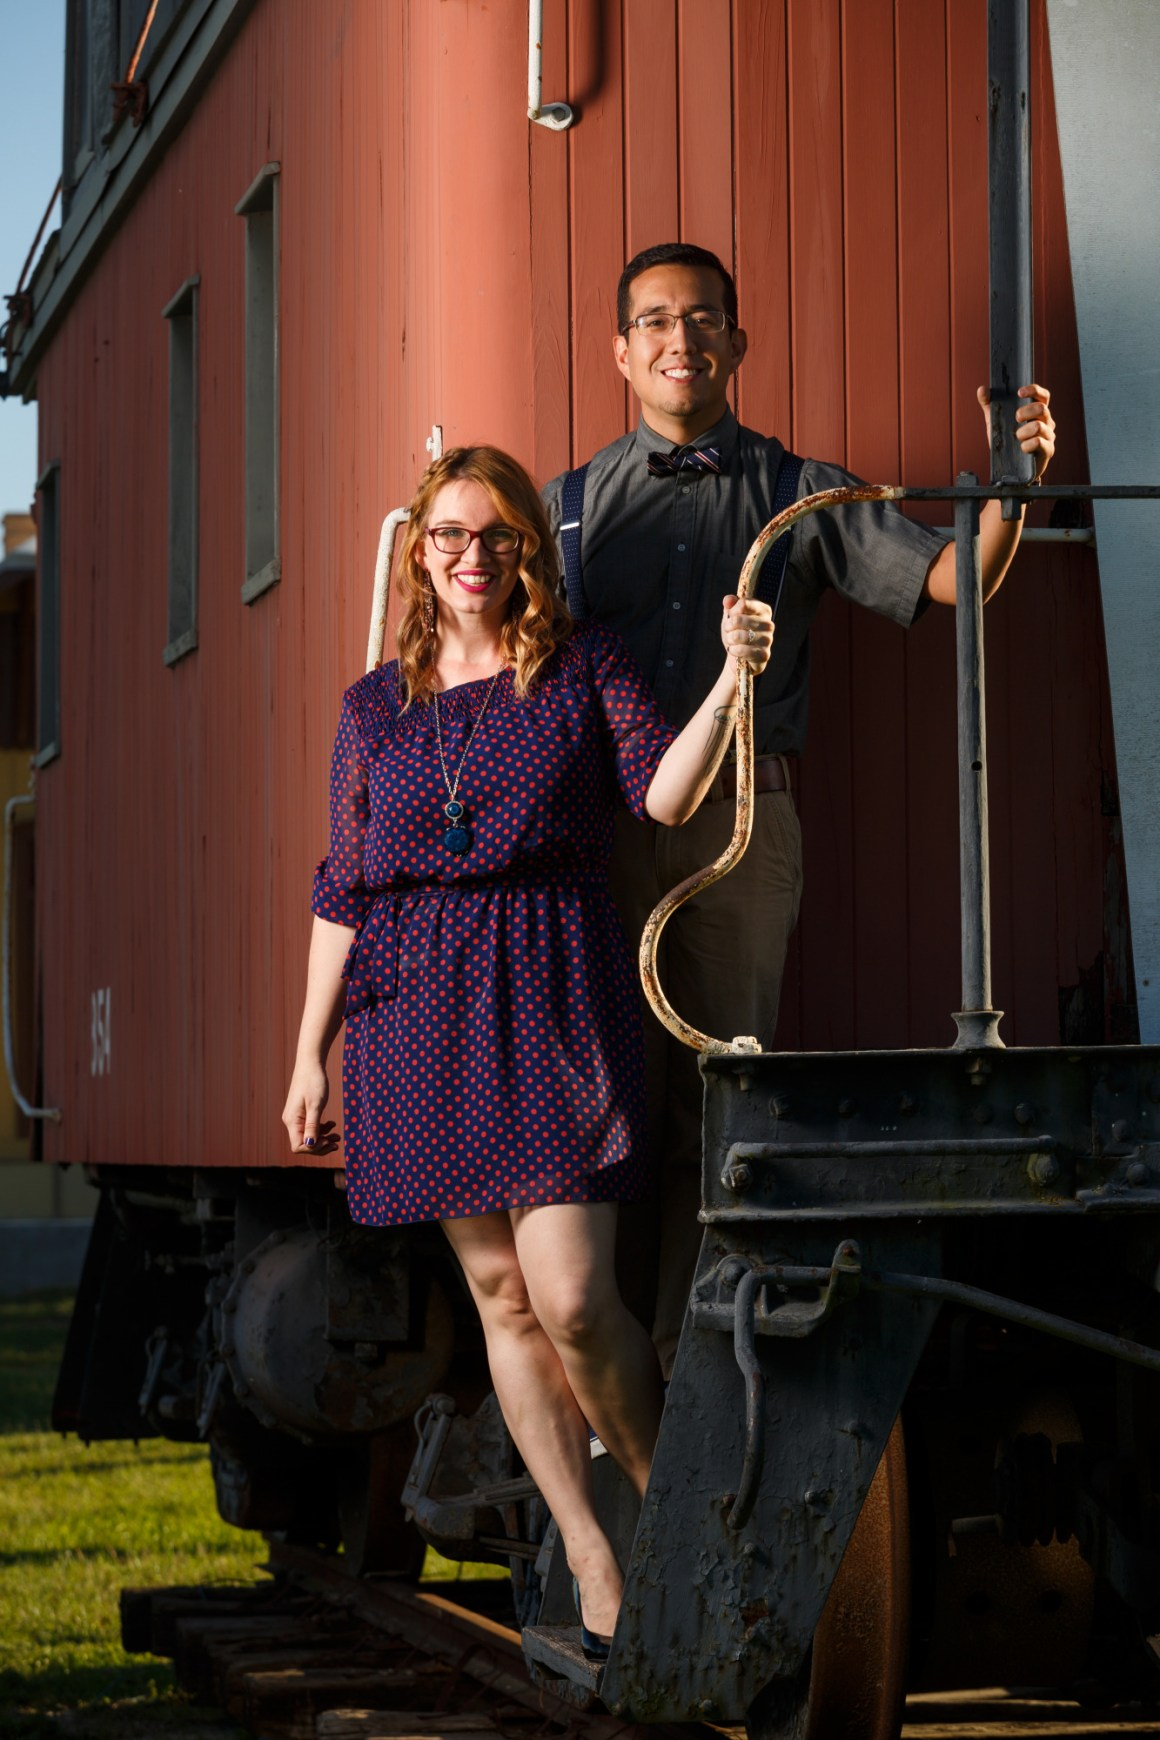 engagement-kyle-railroad-daniel-and-stephanie-001